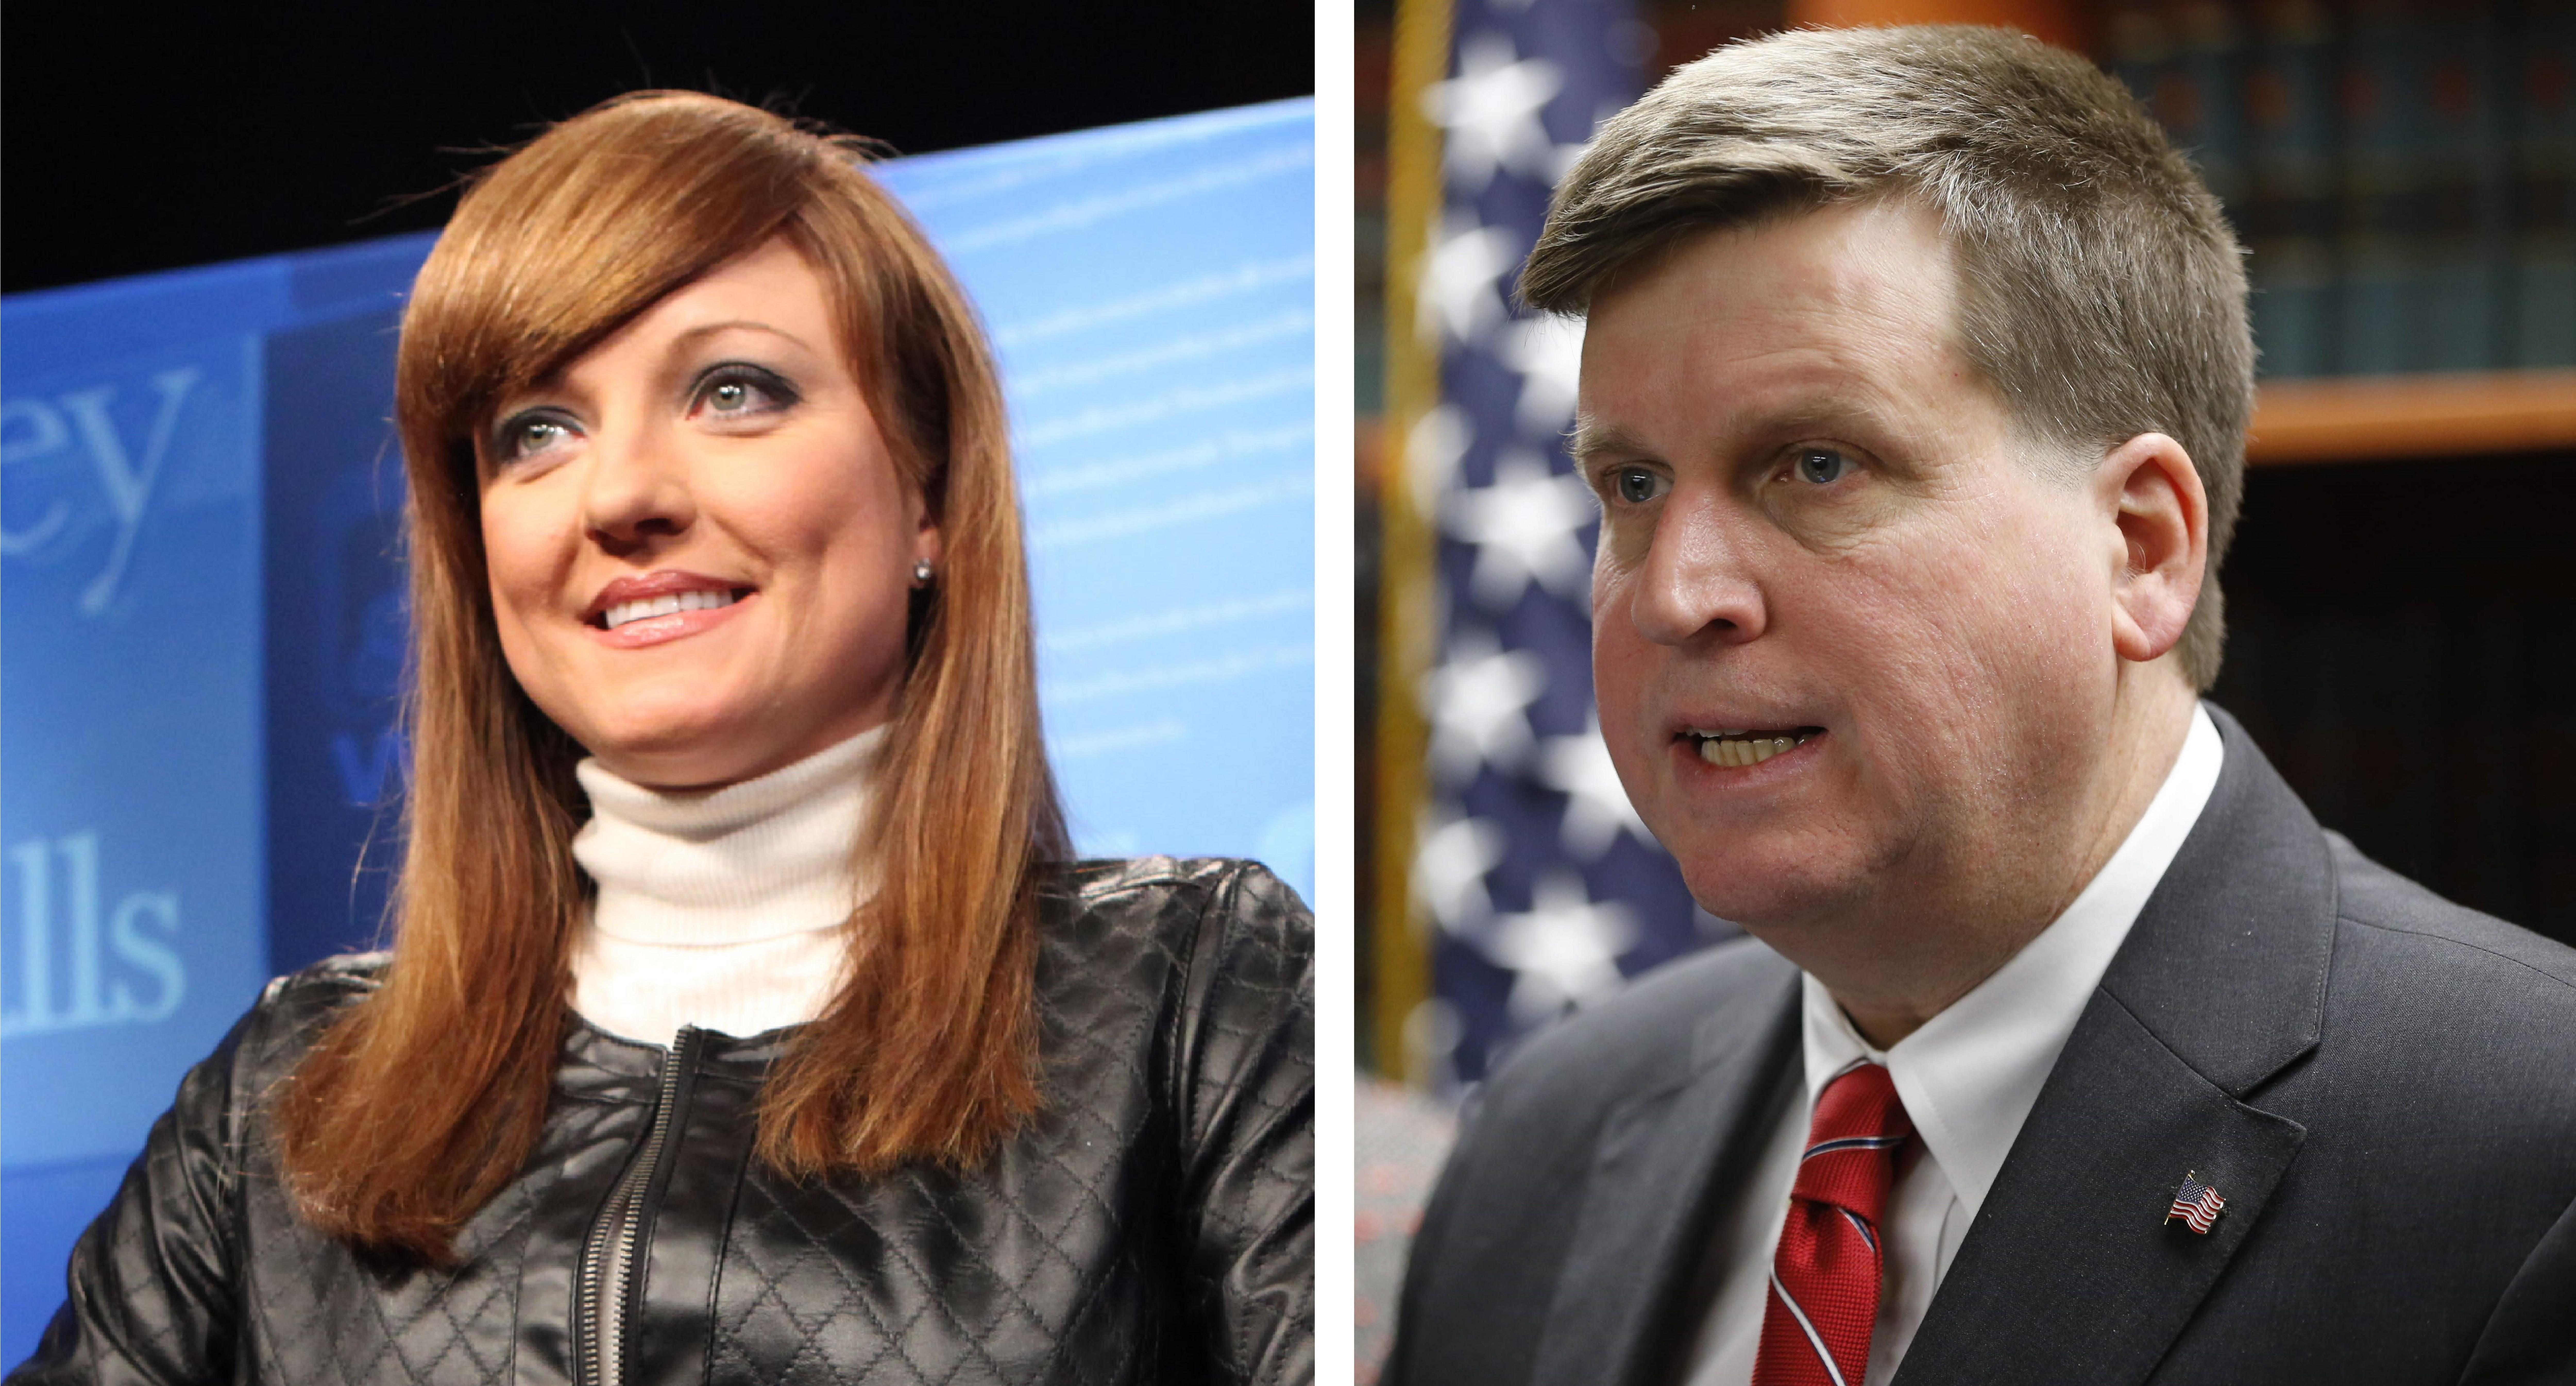 Assembly candidate Kristy L. Mazurek of Depew, left, and Acting District Attorney Michael J. Flaherty, right. (News file photos)